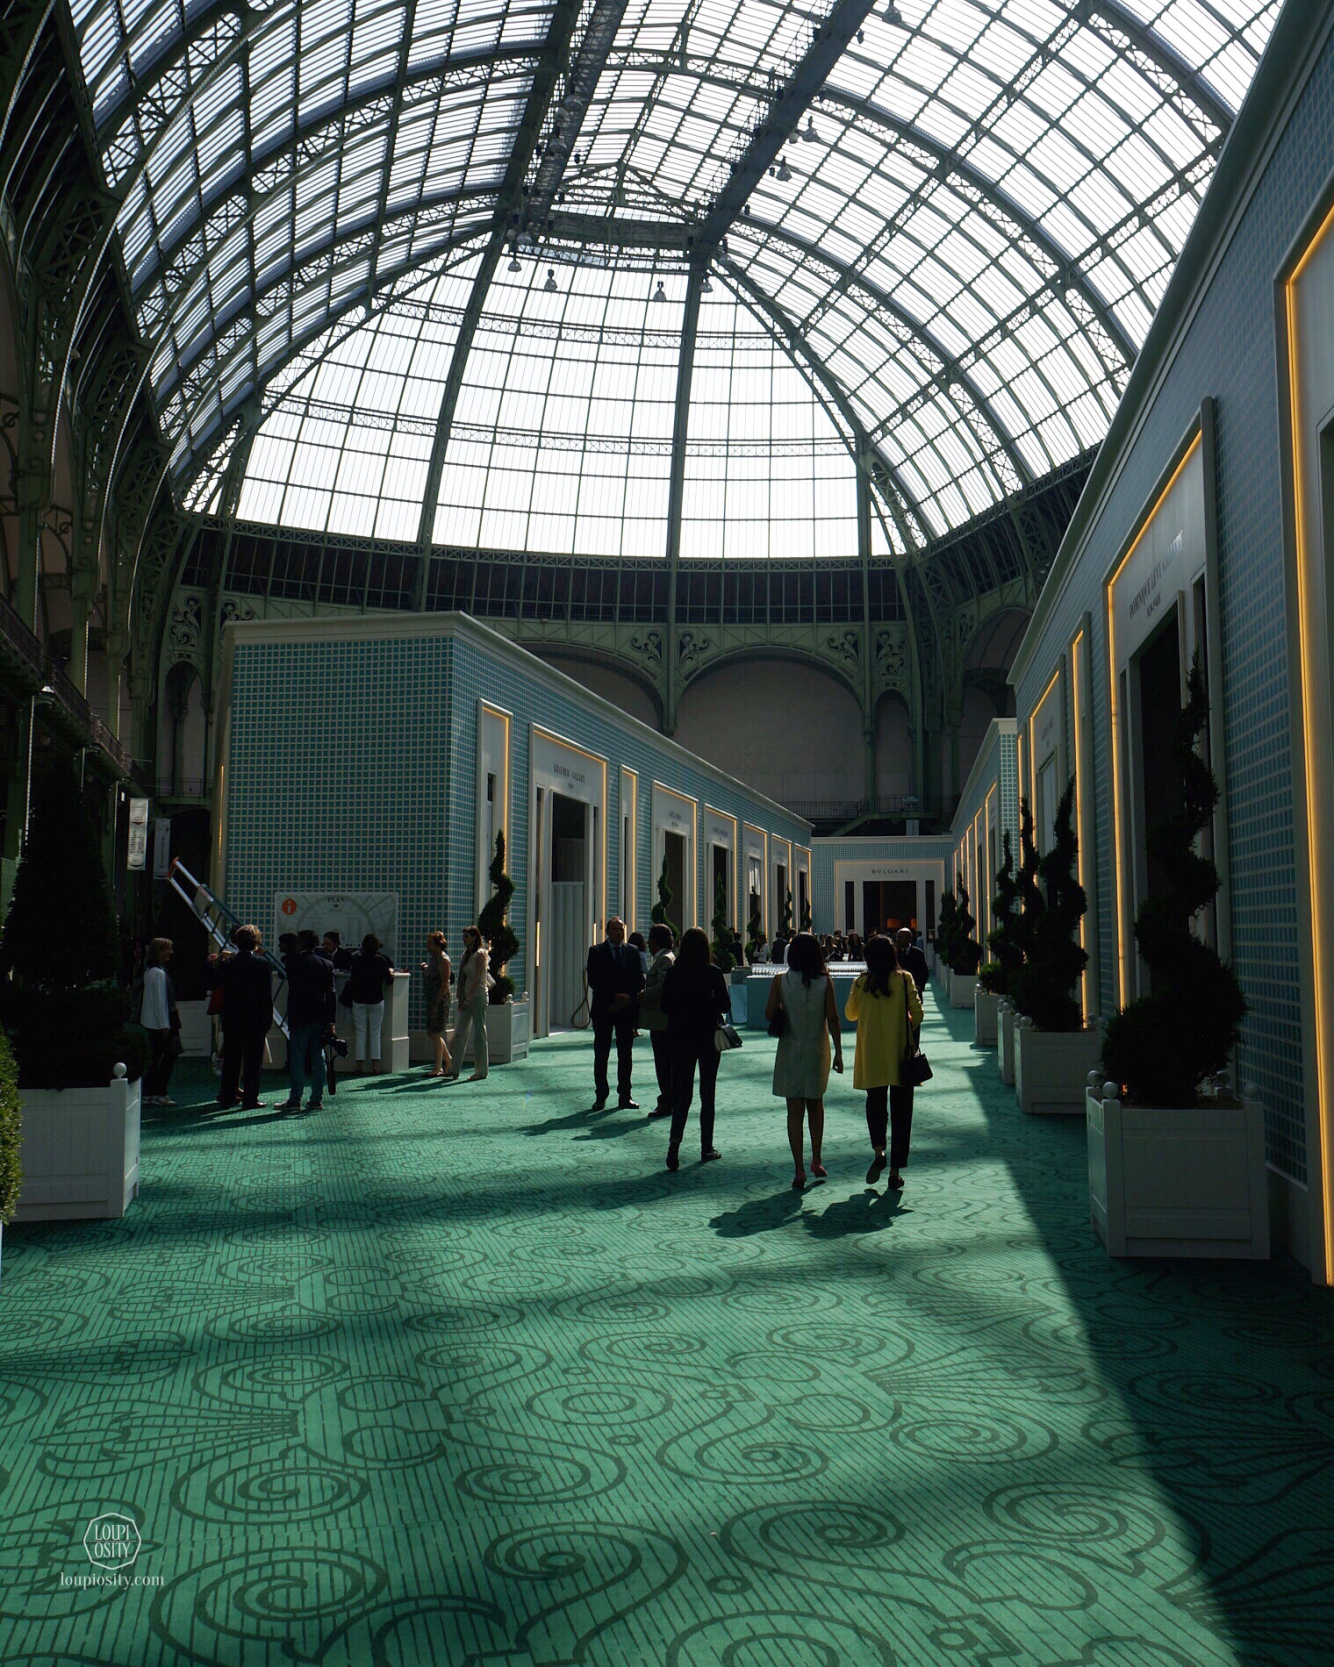 Construction of the Grand Palais began in 1897 following the demolition of the Palais de l'Industrie (Palace of Industry) as part of the preparation works for the Universal Exposition of 1900